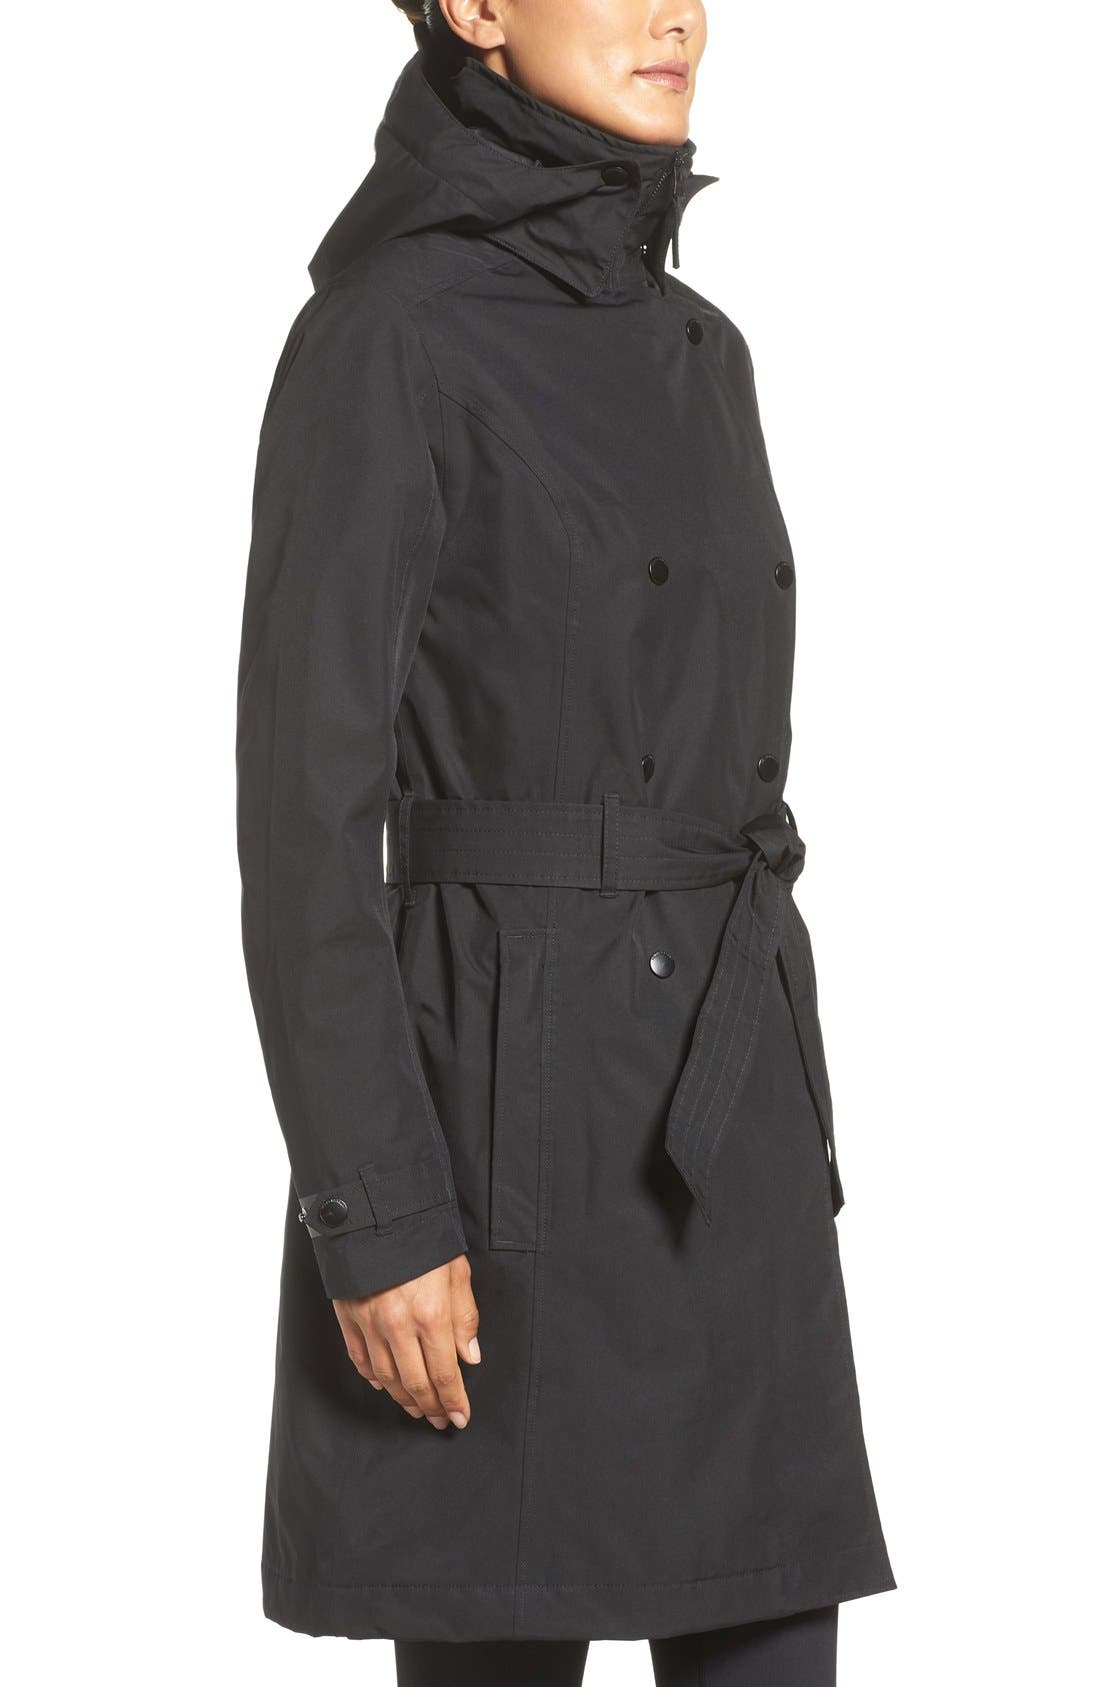 'Welsey' Insulated Waterproof Trench Coat,                             Alternate thumbnail 3, color,                             001